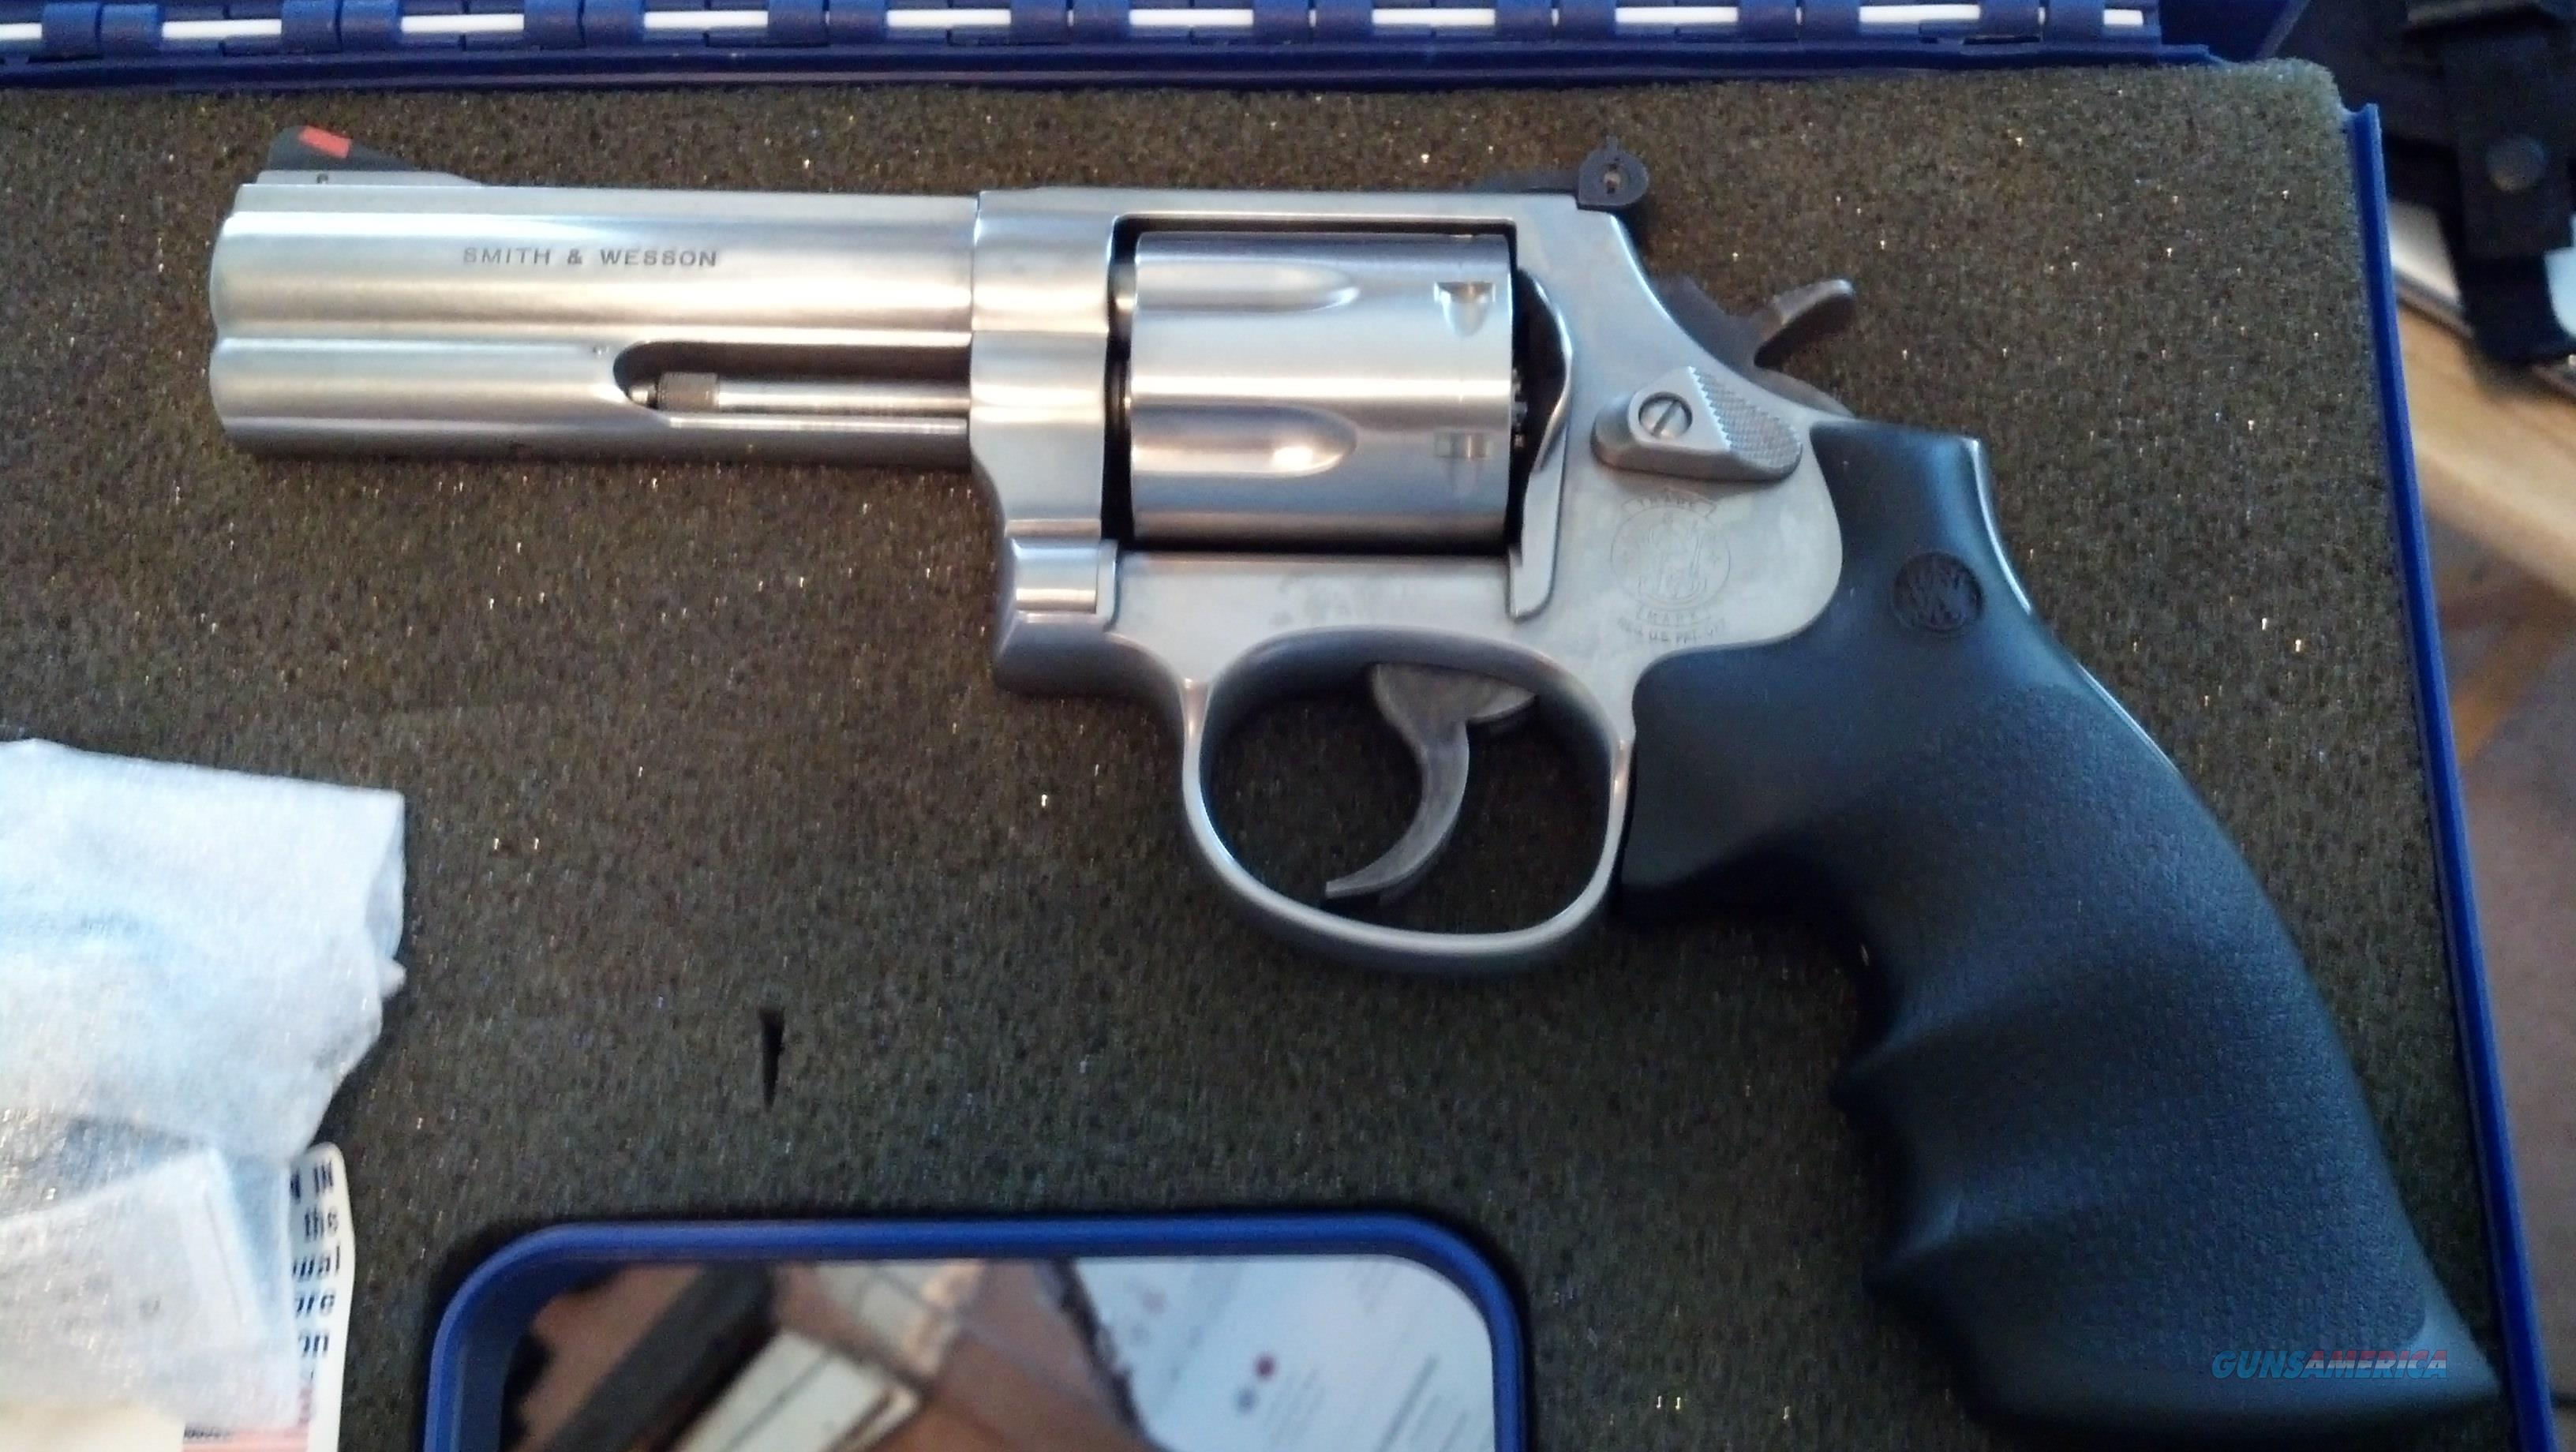 Smith & Wesson 357 mag. 7 shot   Guns > Pistols > Smith & Wesson Revolvers > Full Frame Revolver